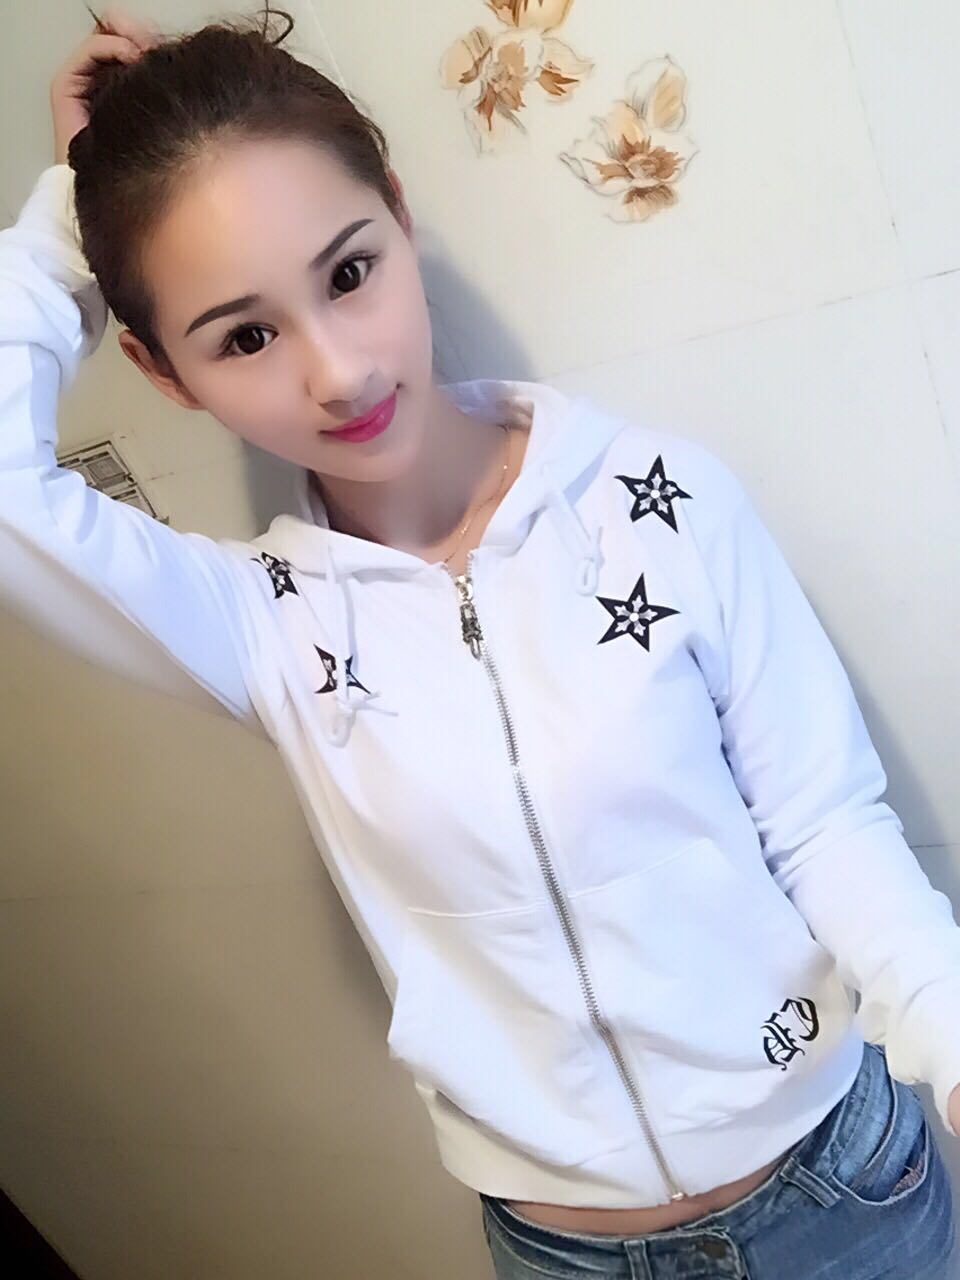 Crowe drawstring sweet lace up heart star printed sweater cardigan short Hooded Jacket available in large sizes